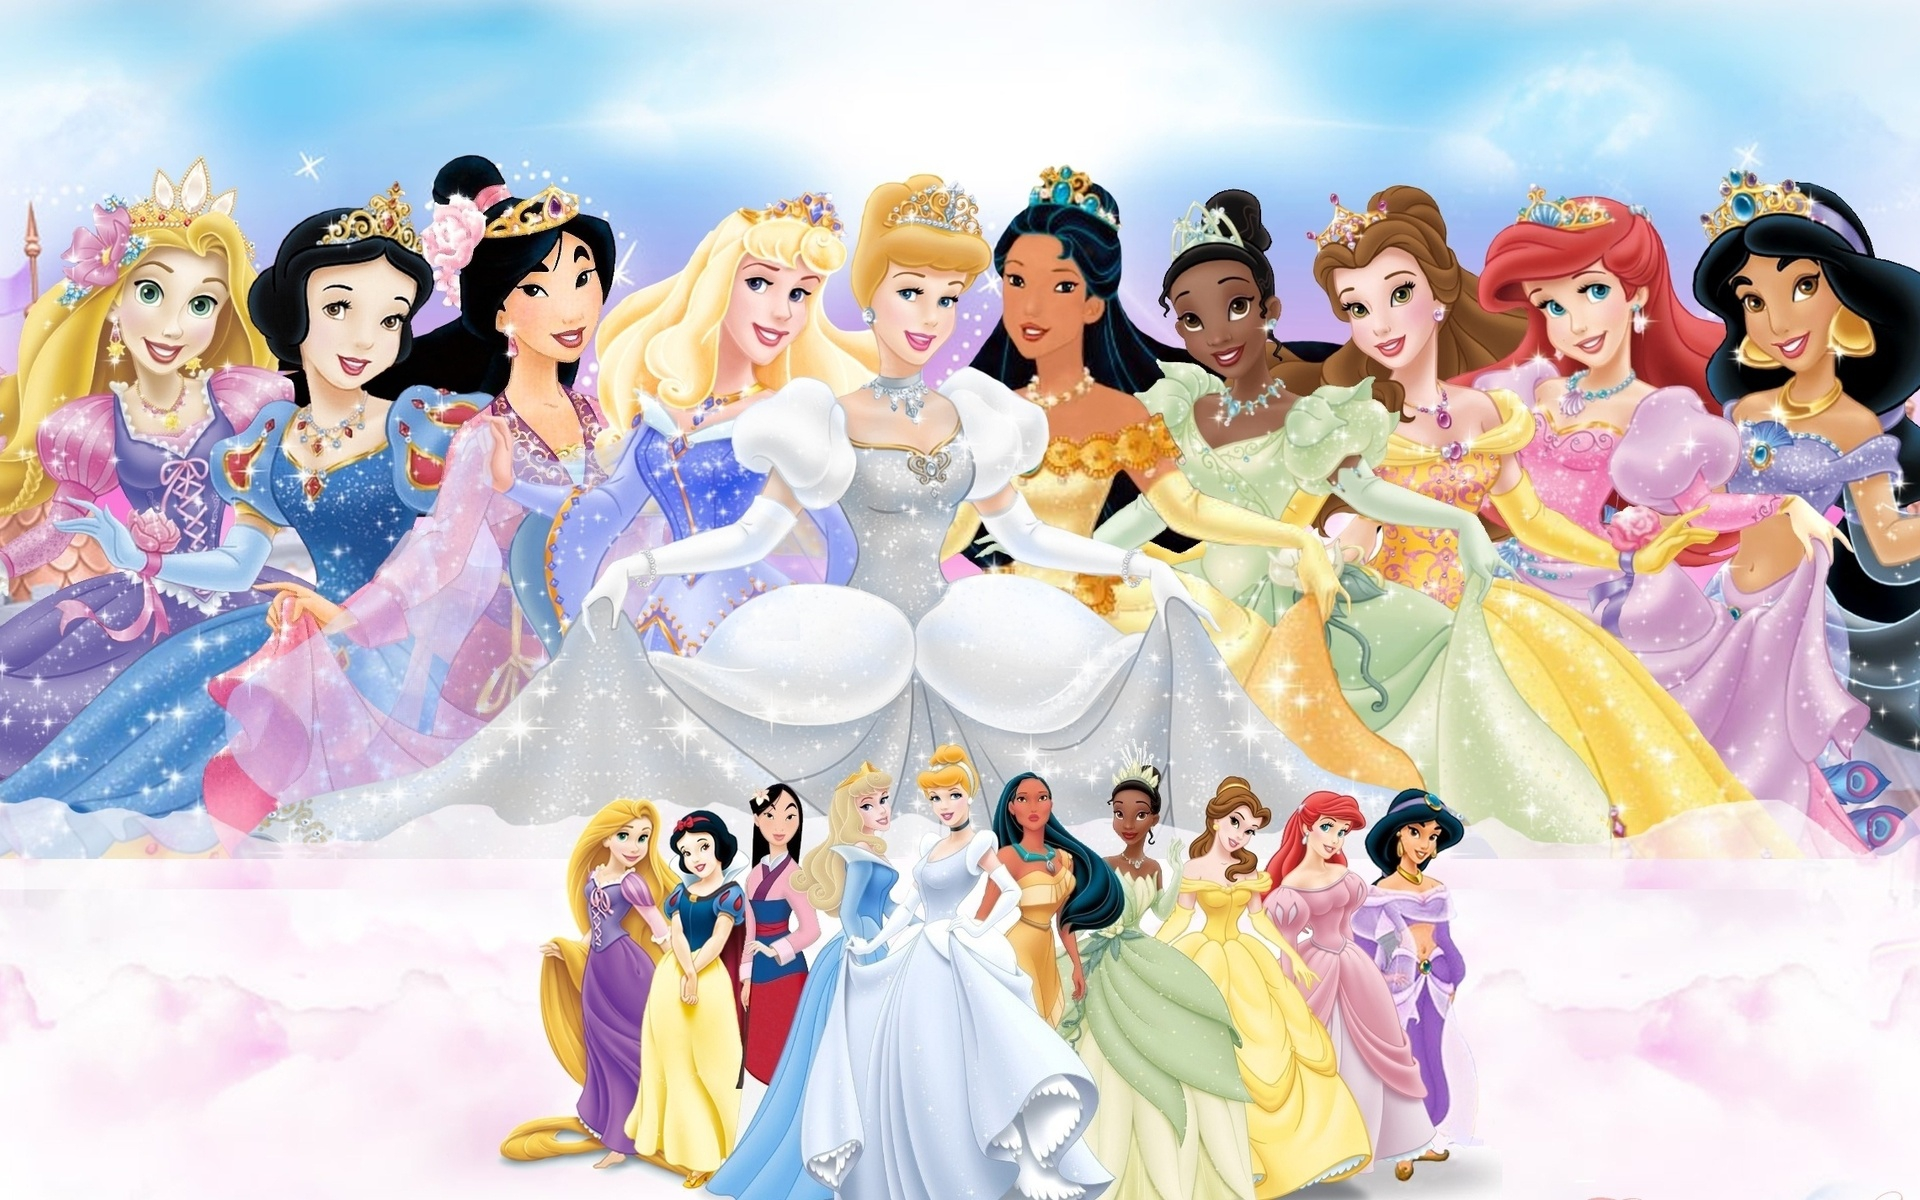 princess charming essay Read chapter one: elliot from the story princess charming by makexbelieve (heather james) with 6,686 reads gender-reversal, fcras2016, fairytale eli eli w.